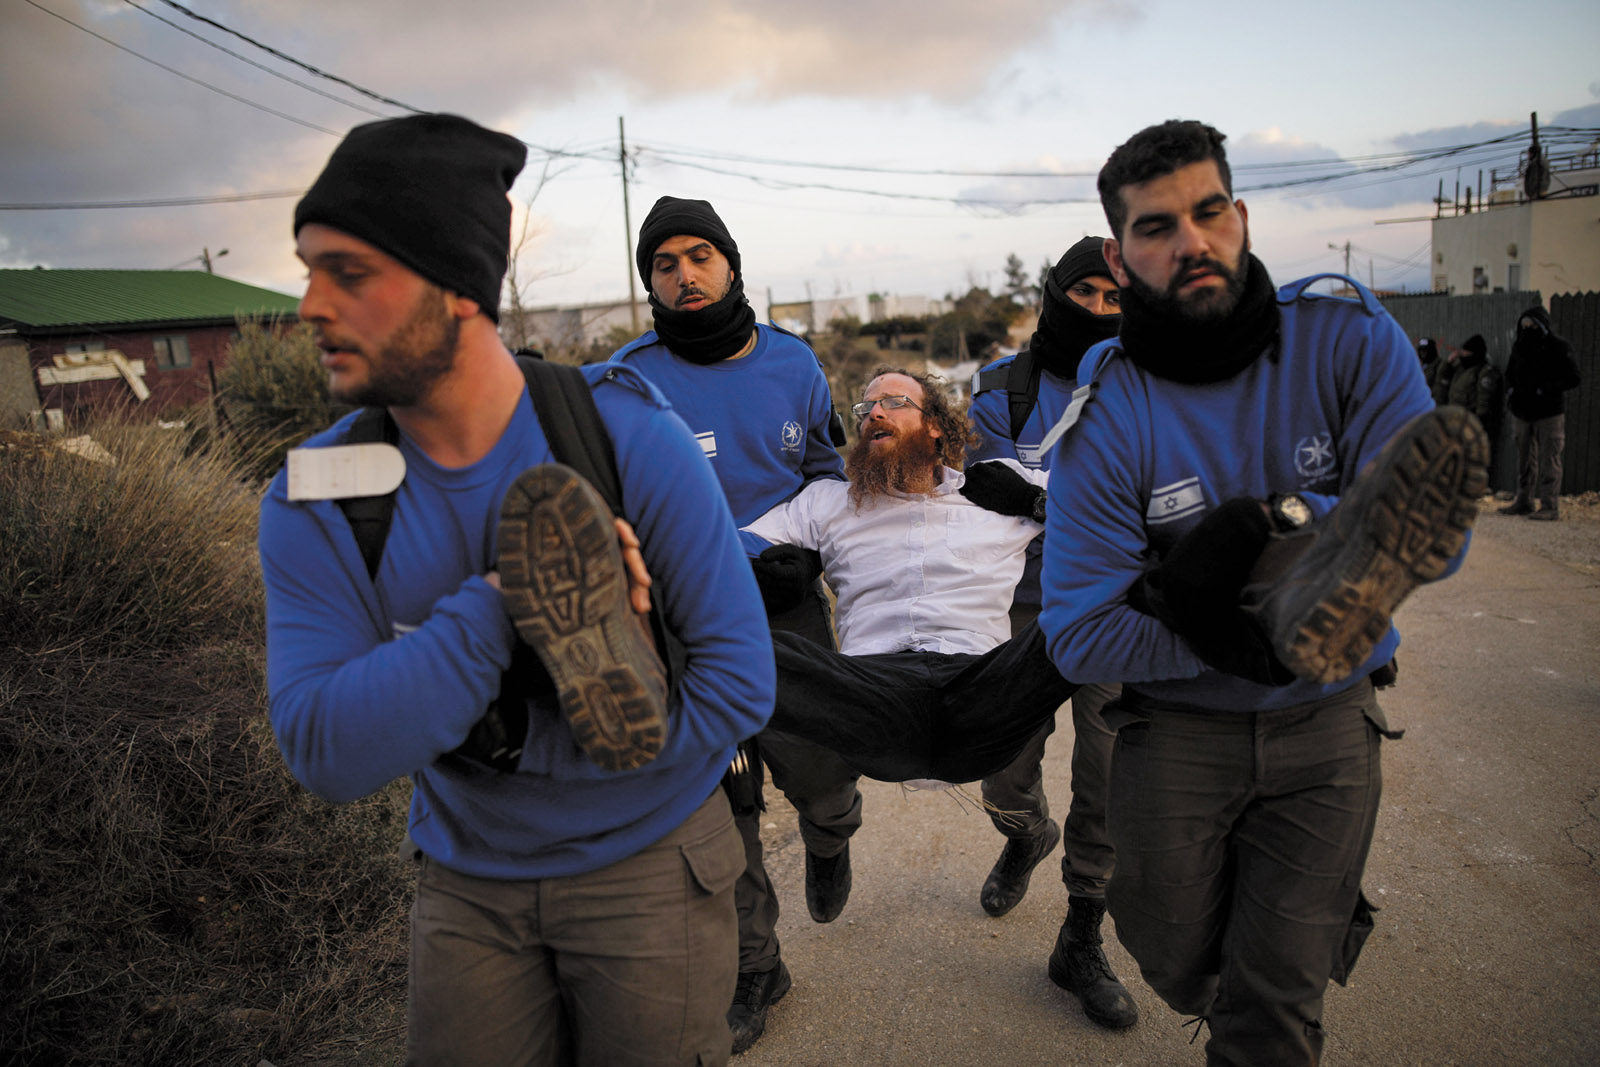 Israeli policemen removing a protester during the eviction of Jewish settlers from the illegal settlement of Amona in the occupied West Bank, February 2017